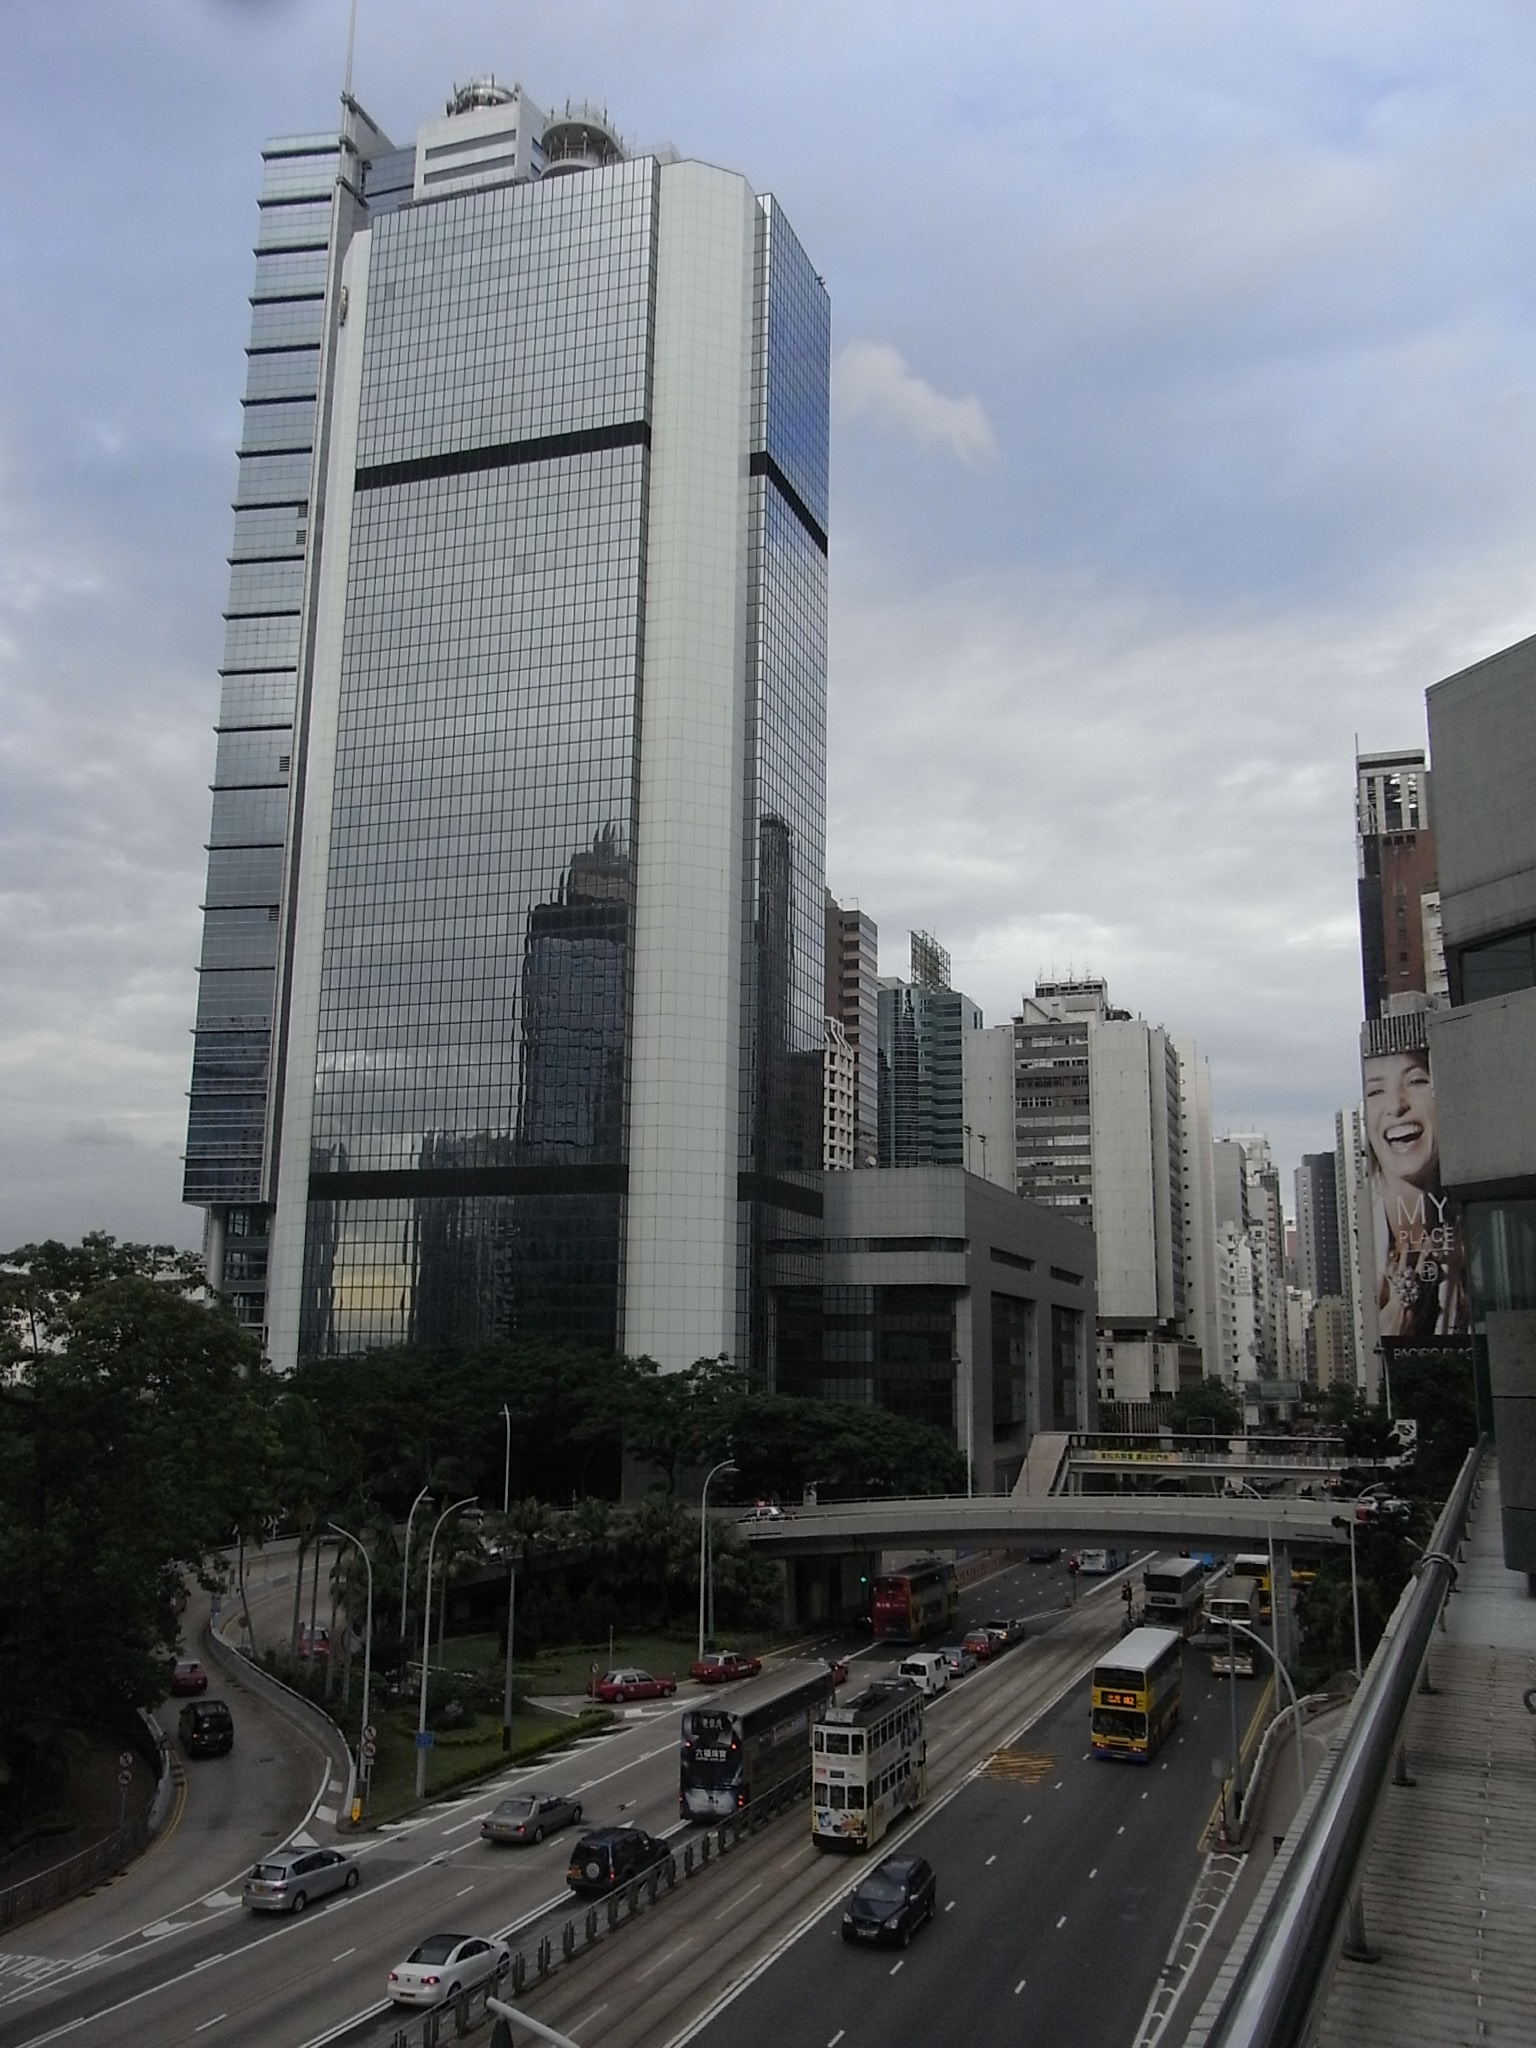 File:HK Admiralty 金鐘 JW Marriott Hotel view 金鐘道 Queensway Police HQ Aug-2010.JPG - Wikimedia Commons